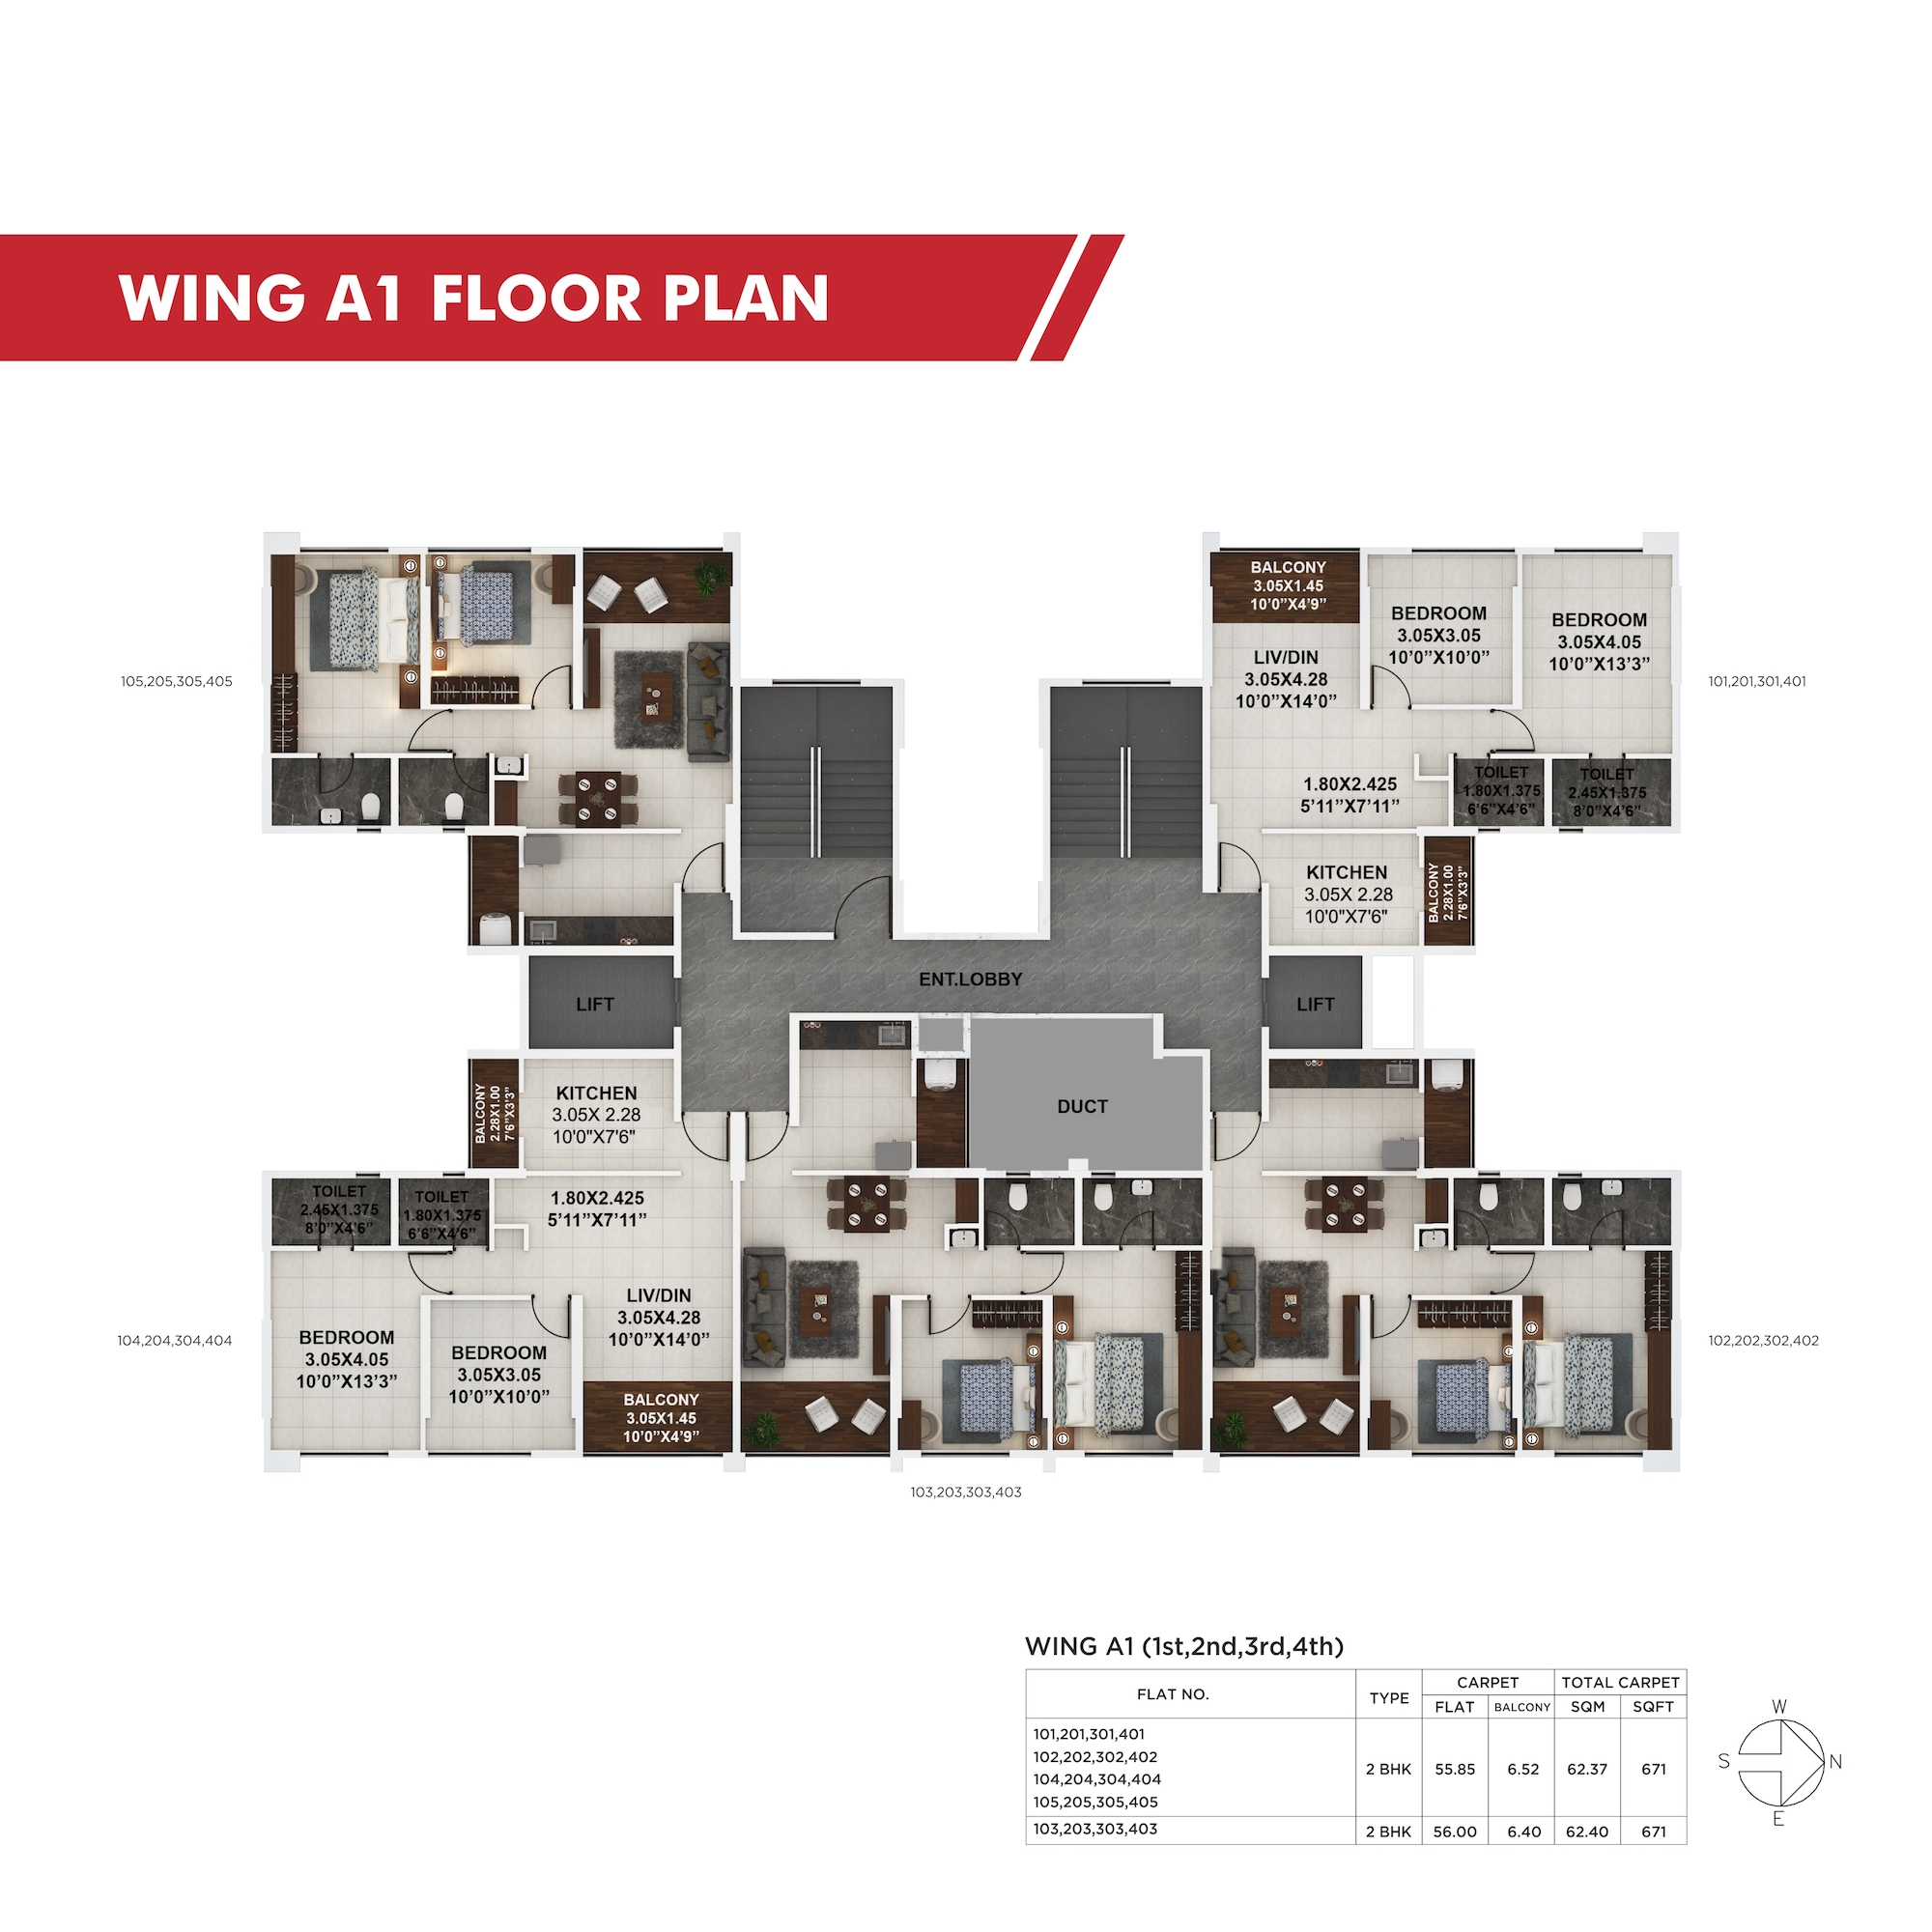 Palaash Wing A1(1st,2nd,3rd,4th) Floor Plan